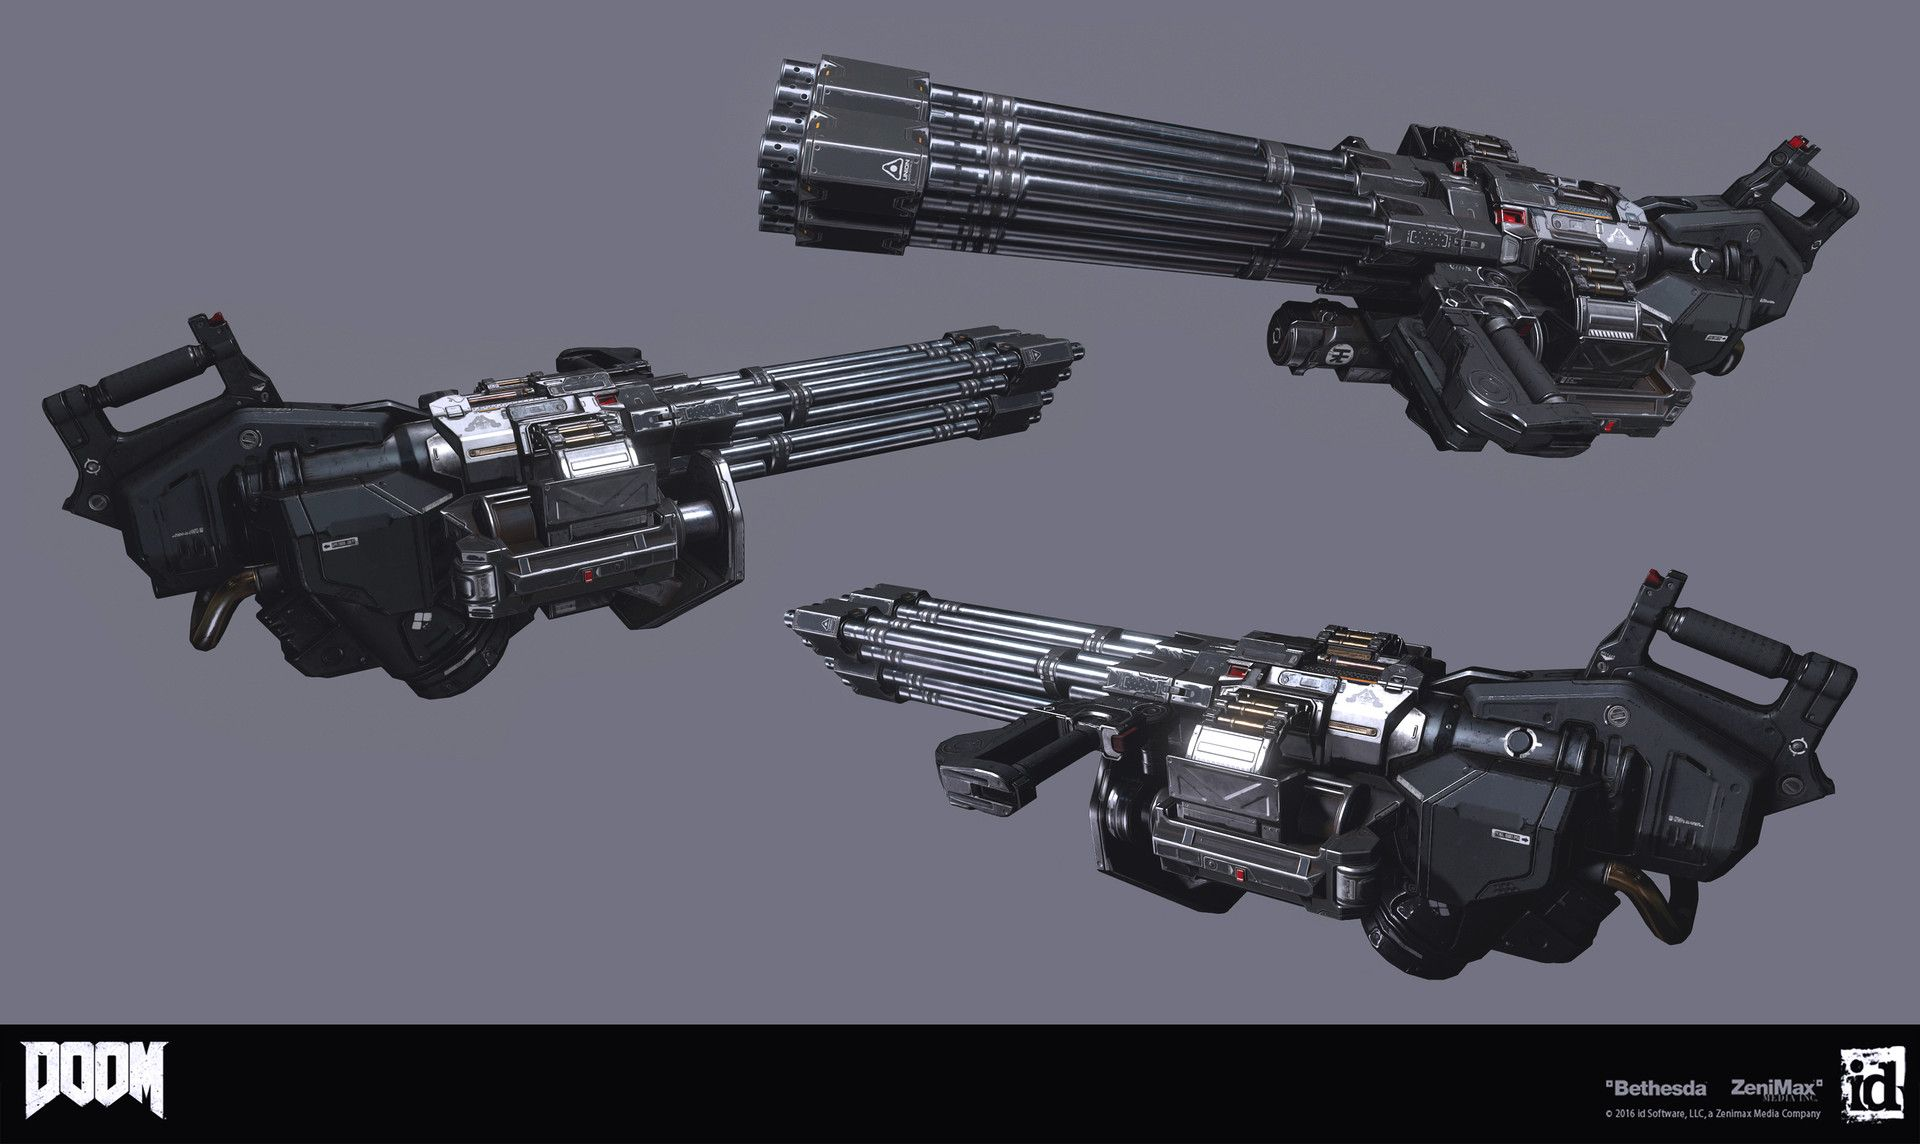 20 Doom Machine Gun Pictures And Ideas On Meta Networks